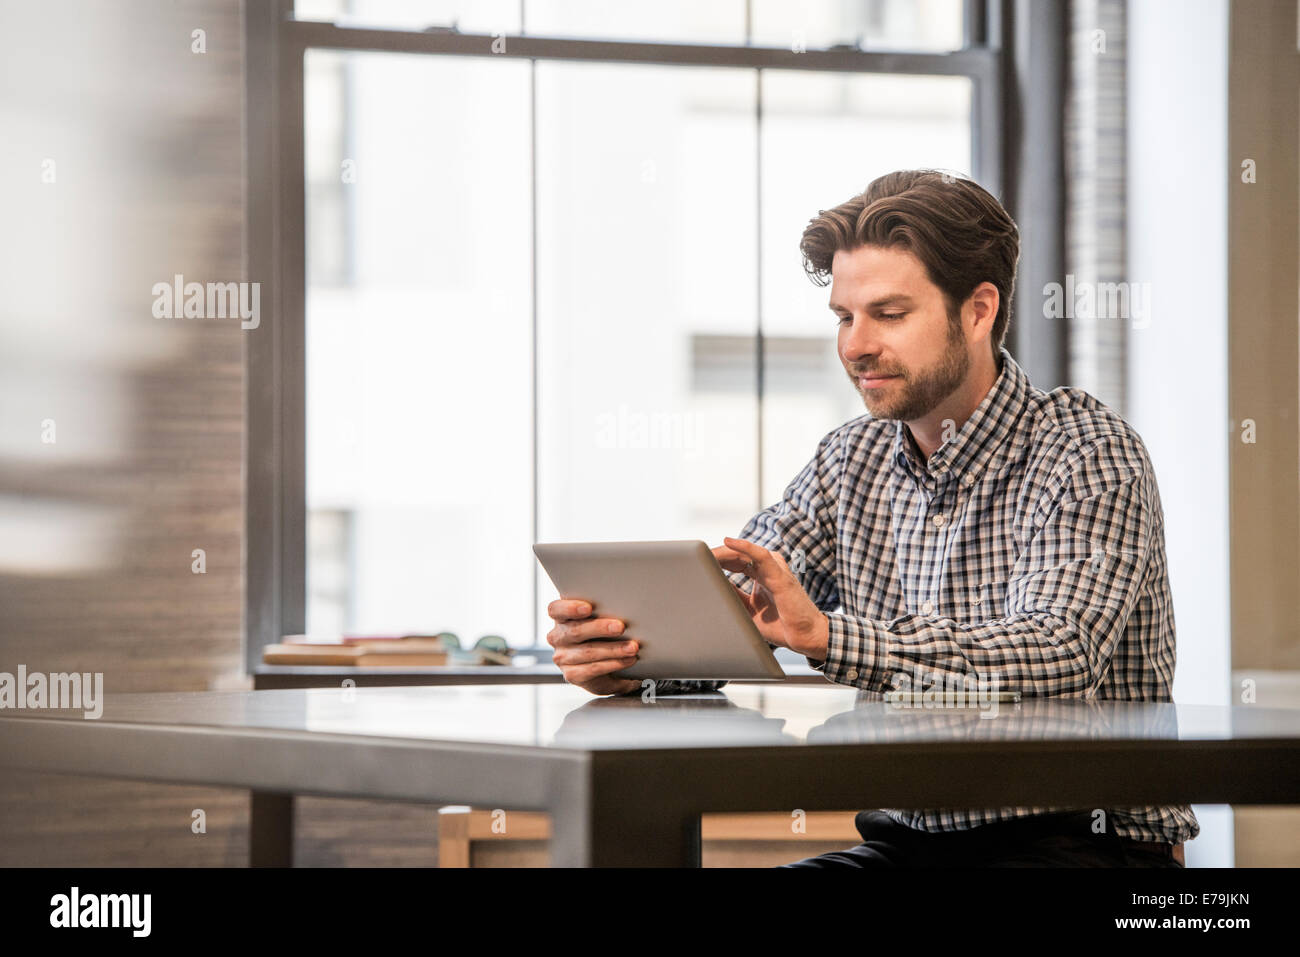 Office life. A man working on a digital tablet at an office desk. - Stock Image